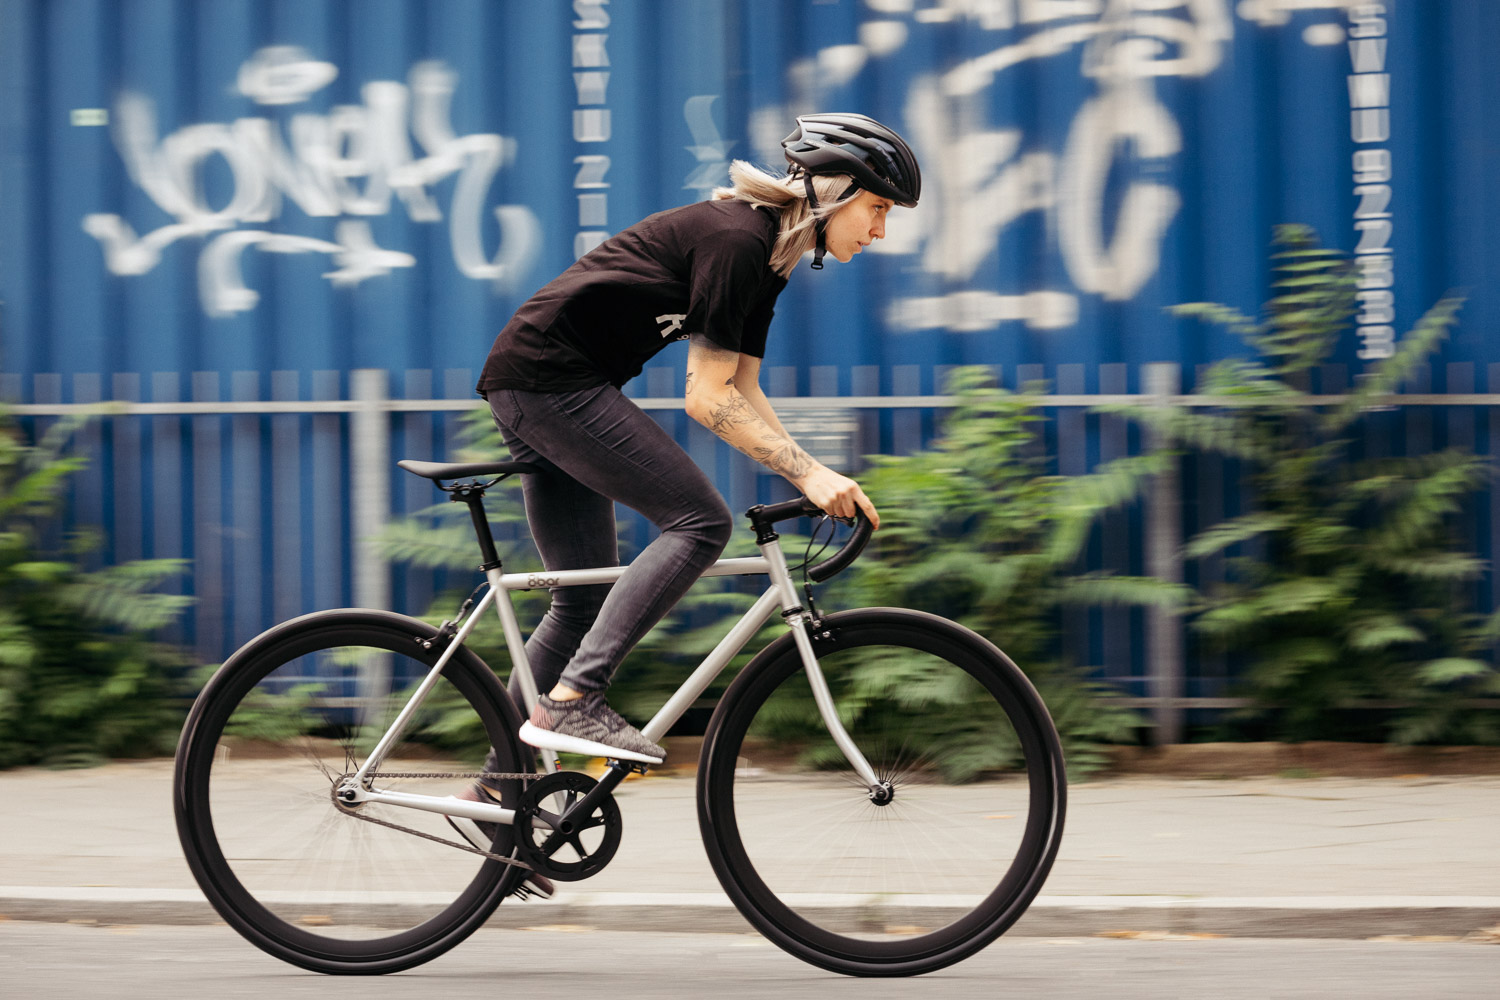 8bar-fhain-lookbook-singlespeed-fixed-gear-fixie-lr-10